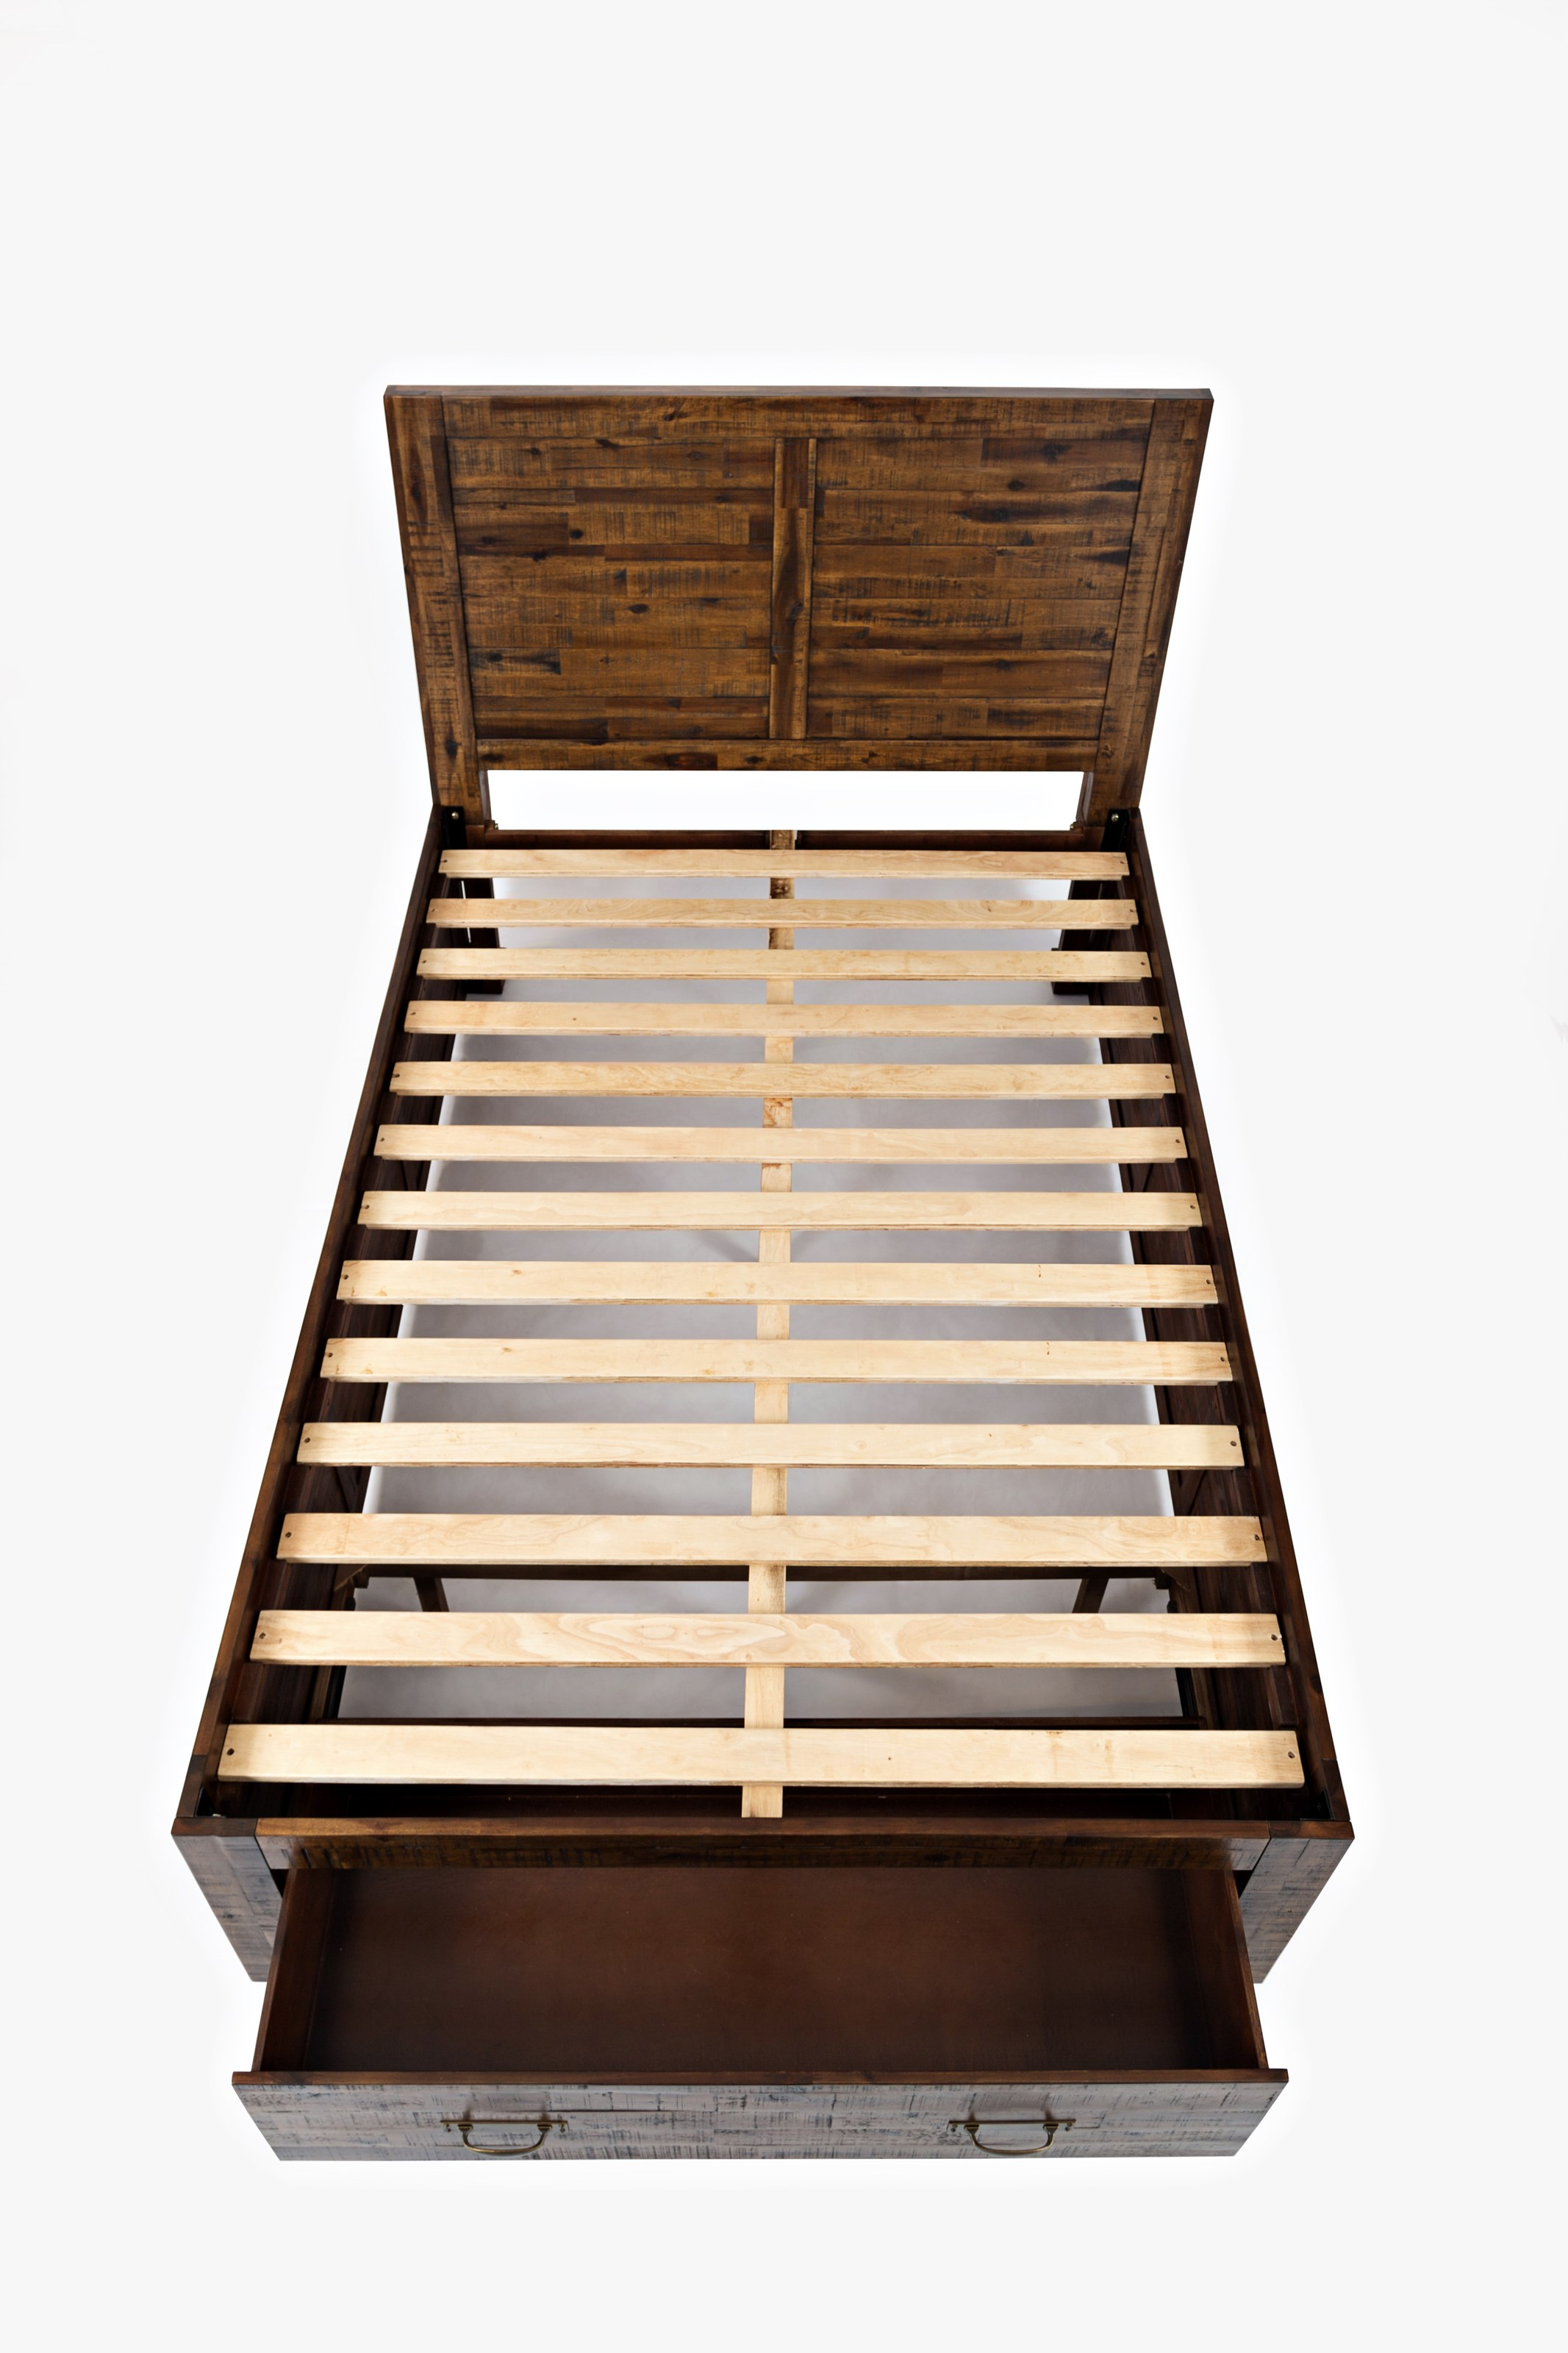 Full Size Storage Beds Extra Tall Diy Projects: Jofran Sonoma Creek Full Size Storage Bed